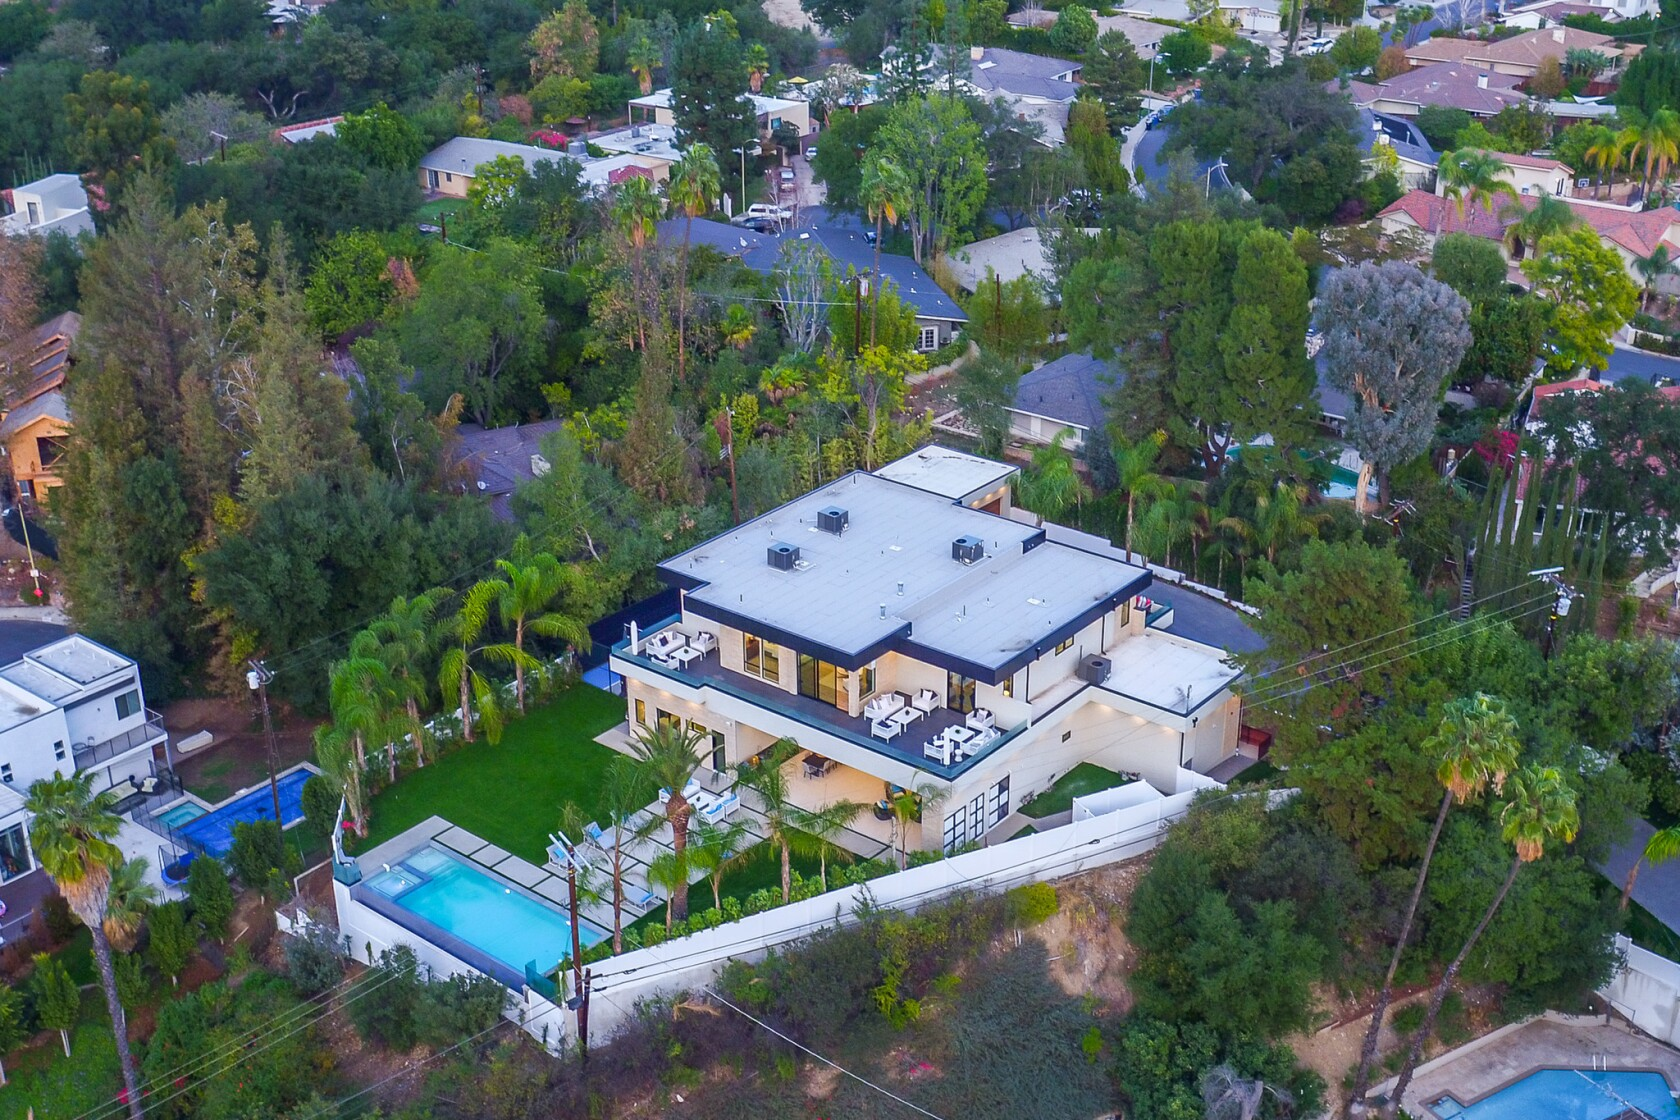 Haus in Encino, California